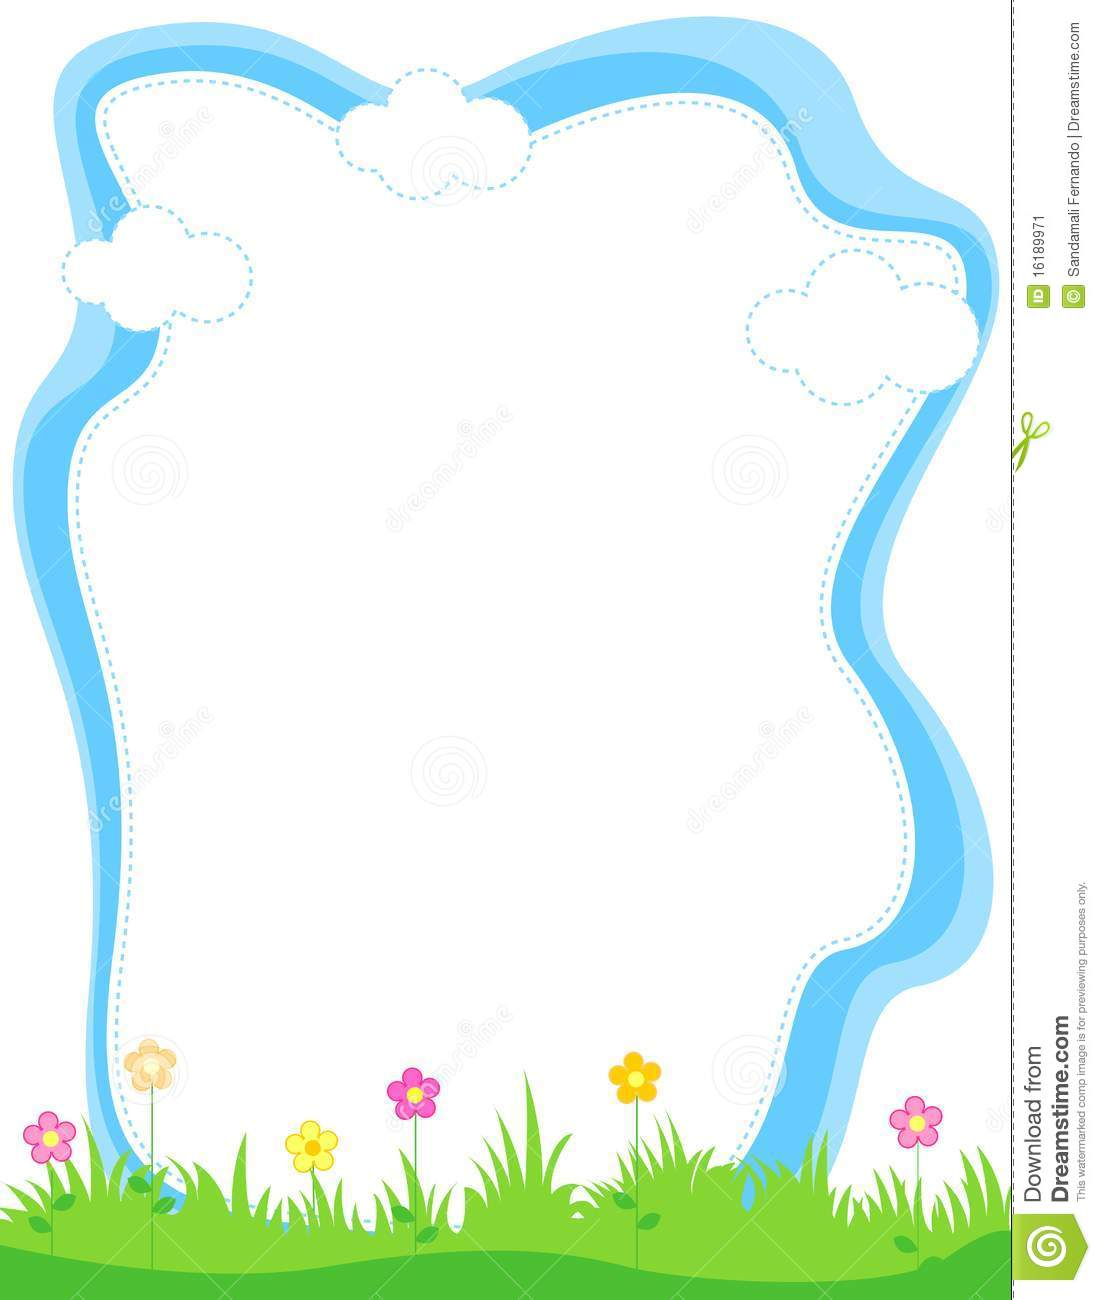 Summer border. Clipart free download best